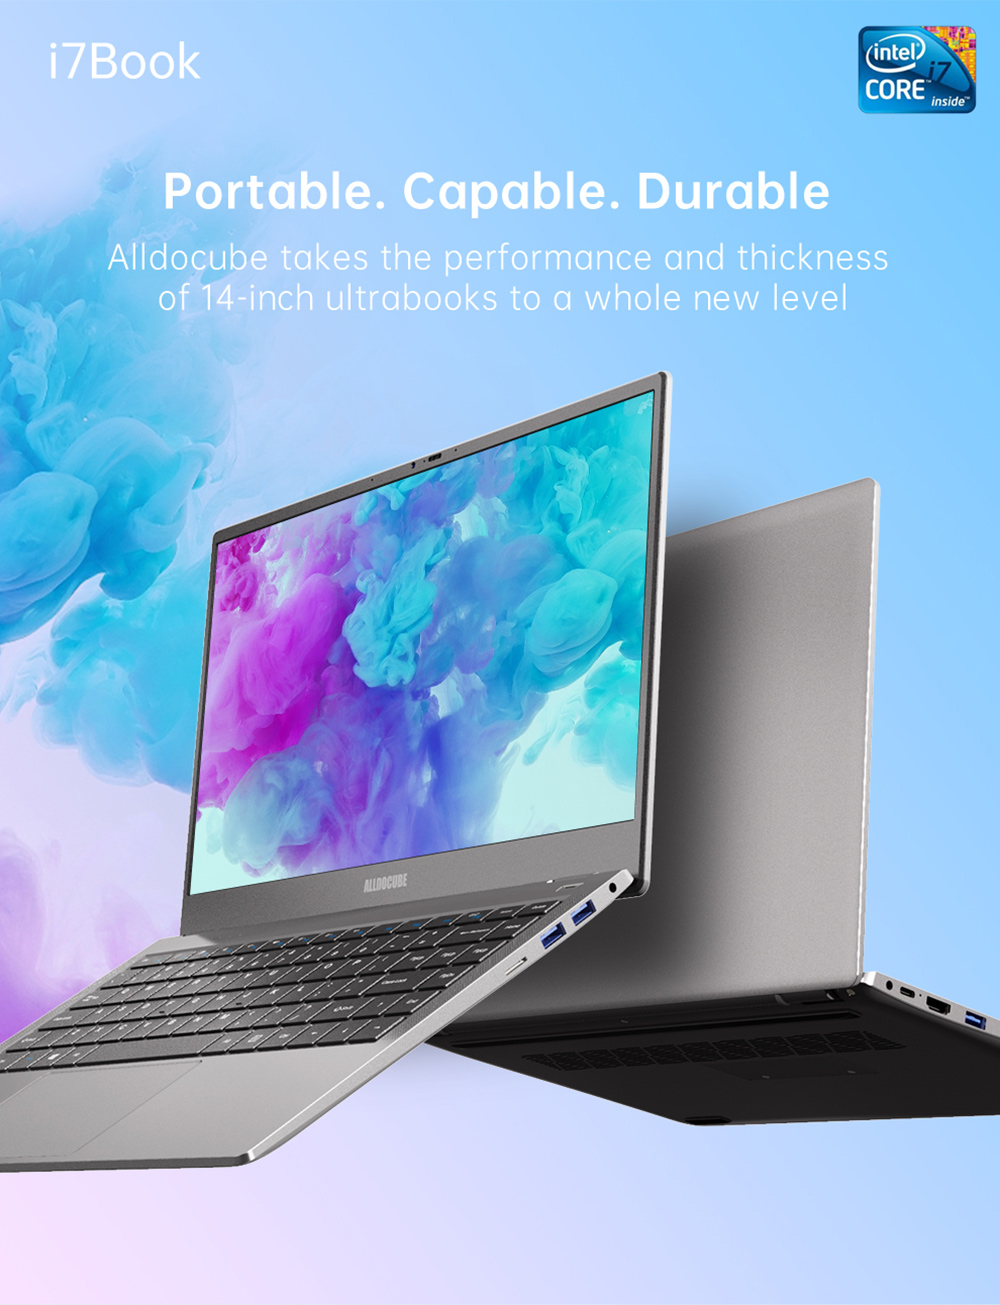 ALLDOCUBE i7Book 14.1 inch Notebook - Platinum